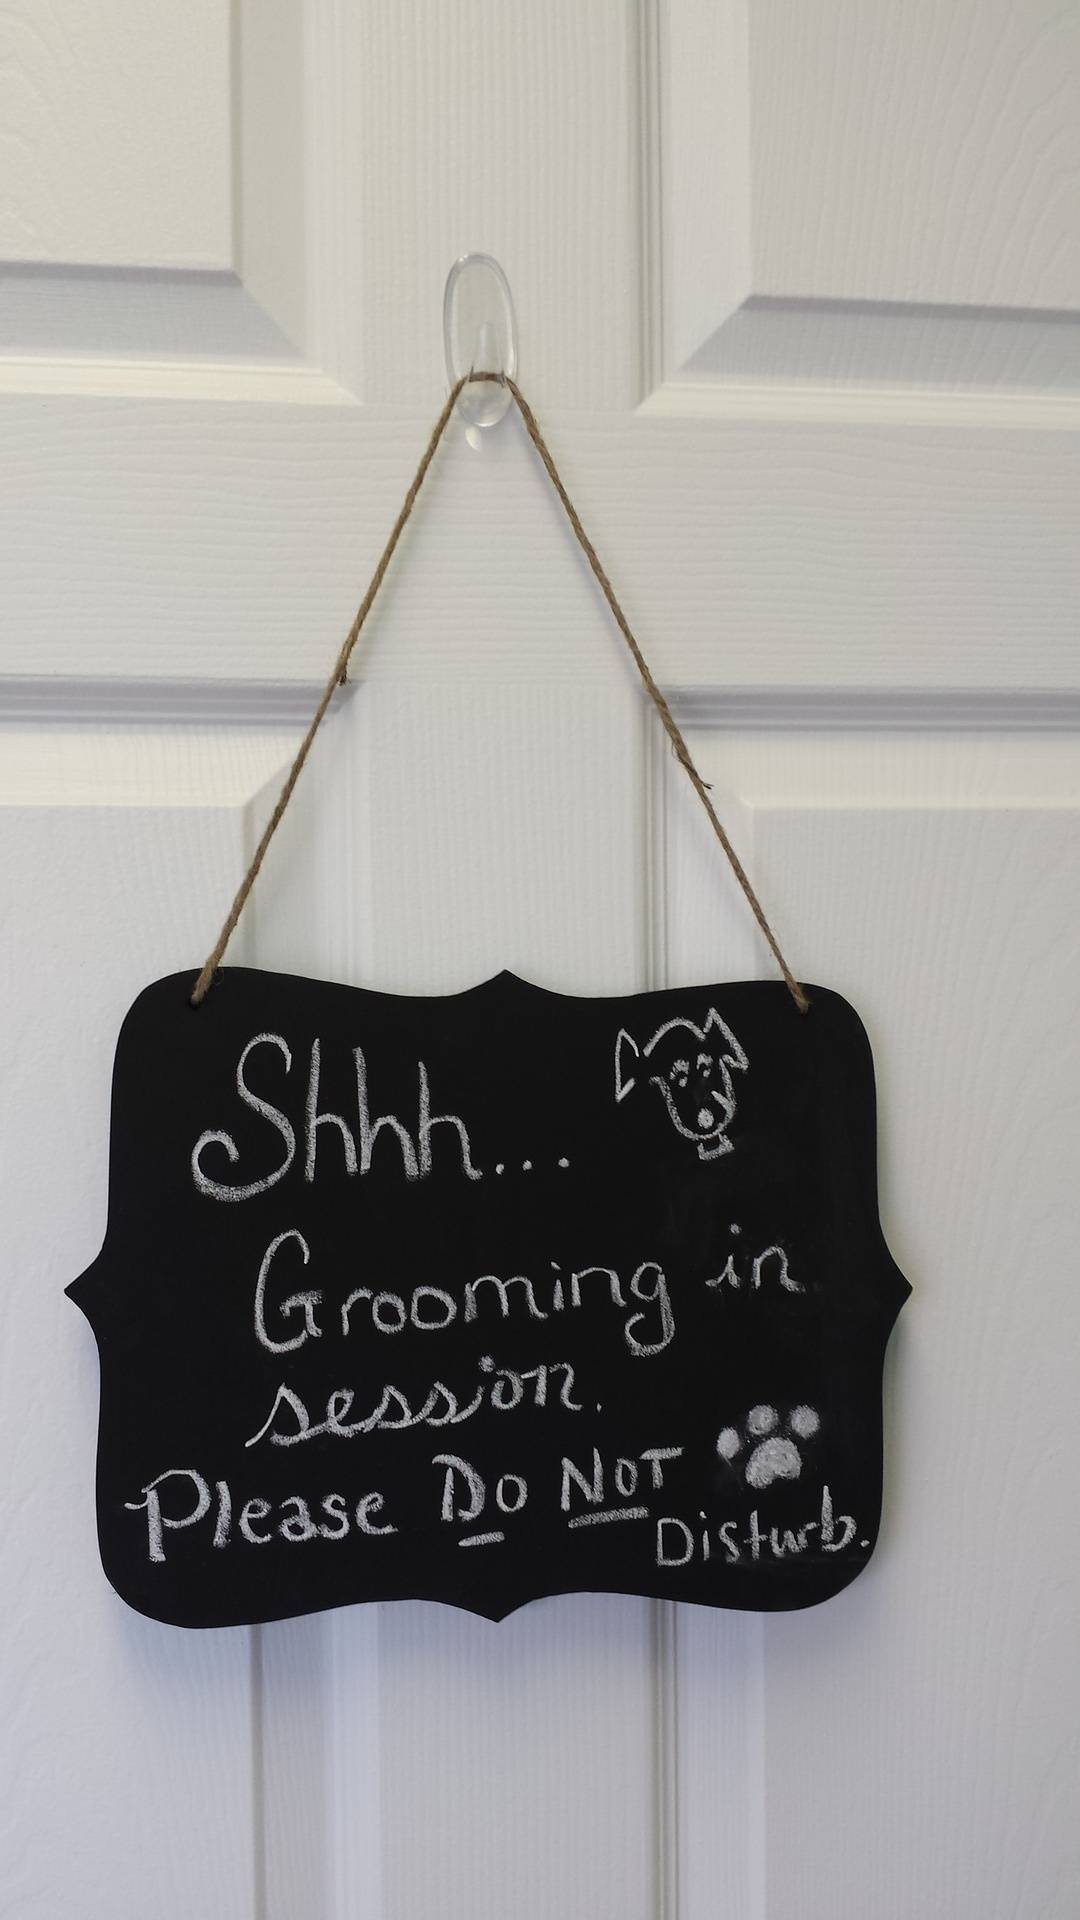 Entrance to Grooming Area